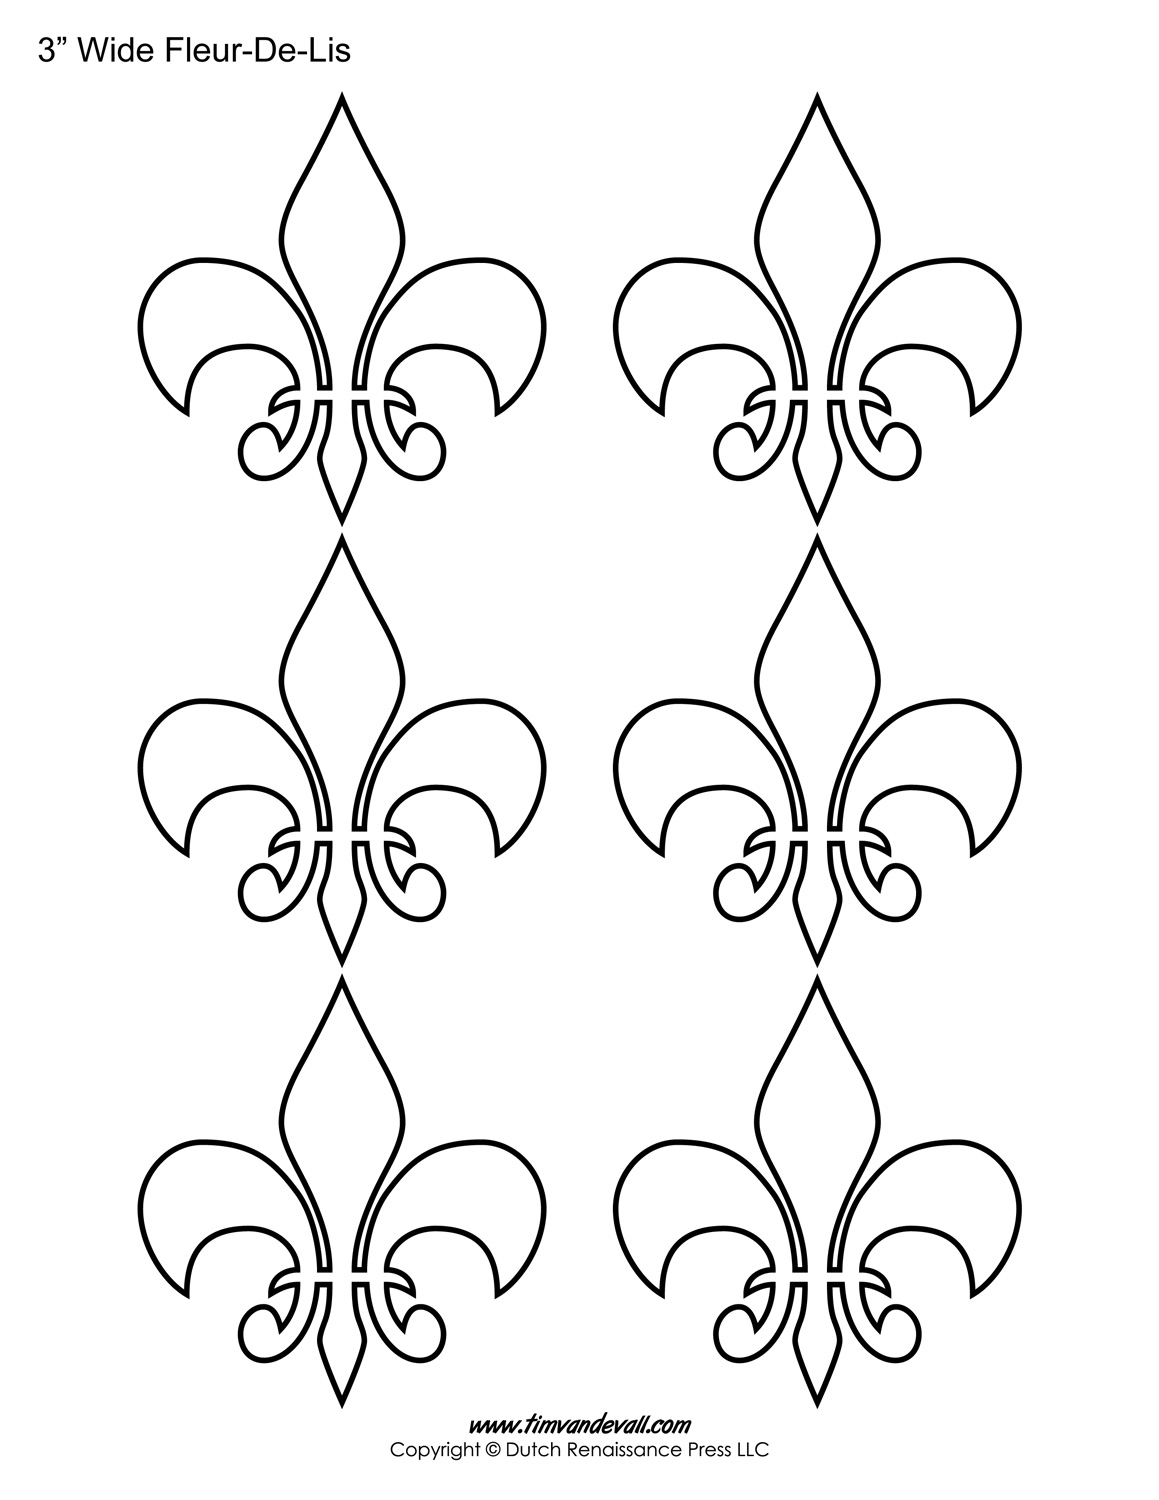 photo relating to Fleur De Lis Printable referred to as Fleur De Lis Templates Printable Fleur De Lis Designs